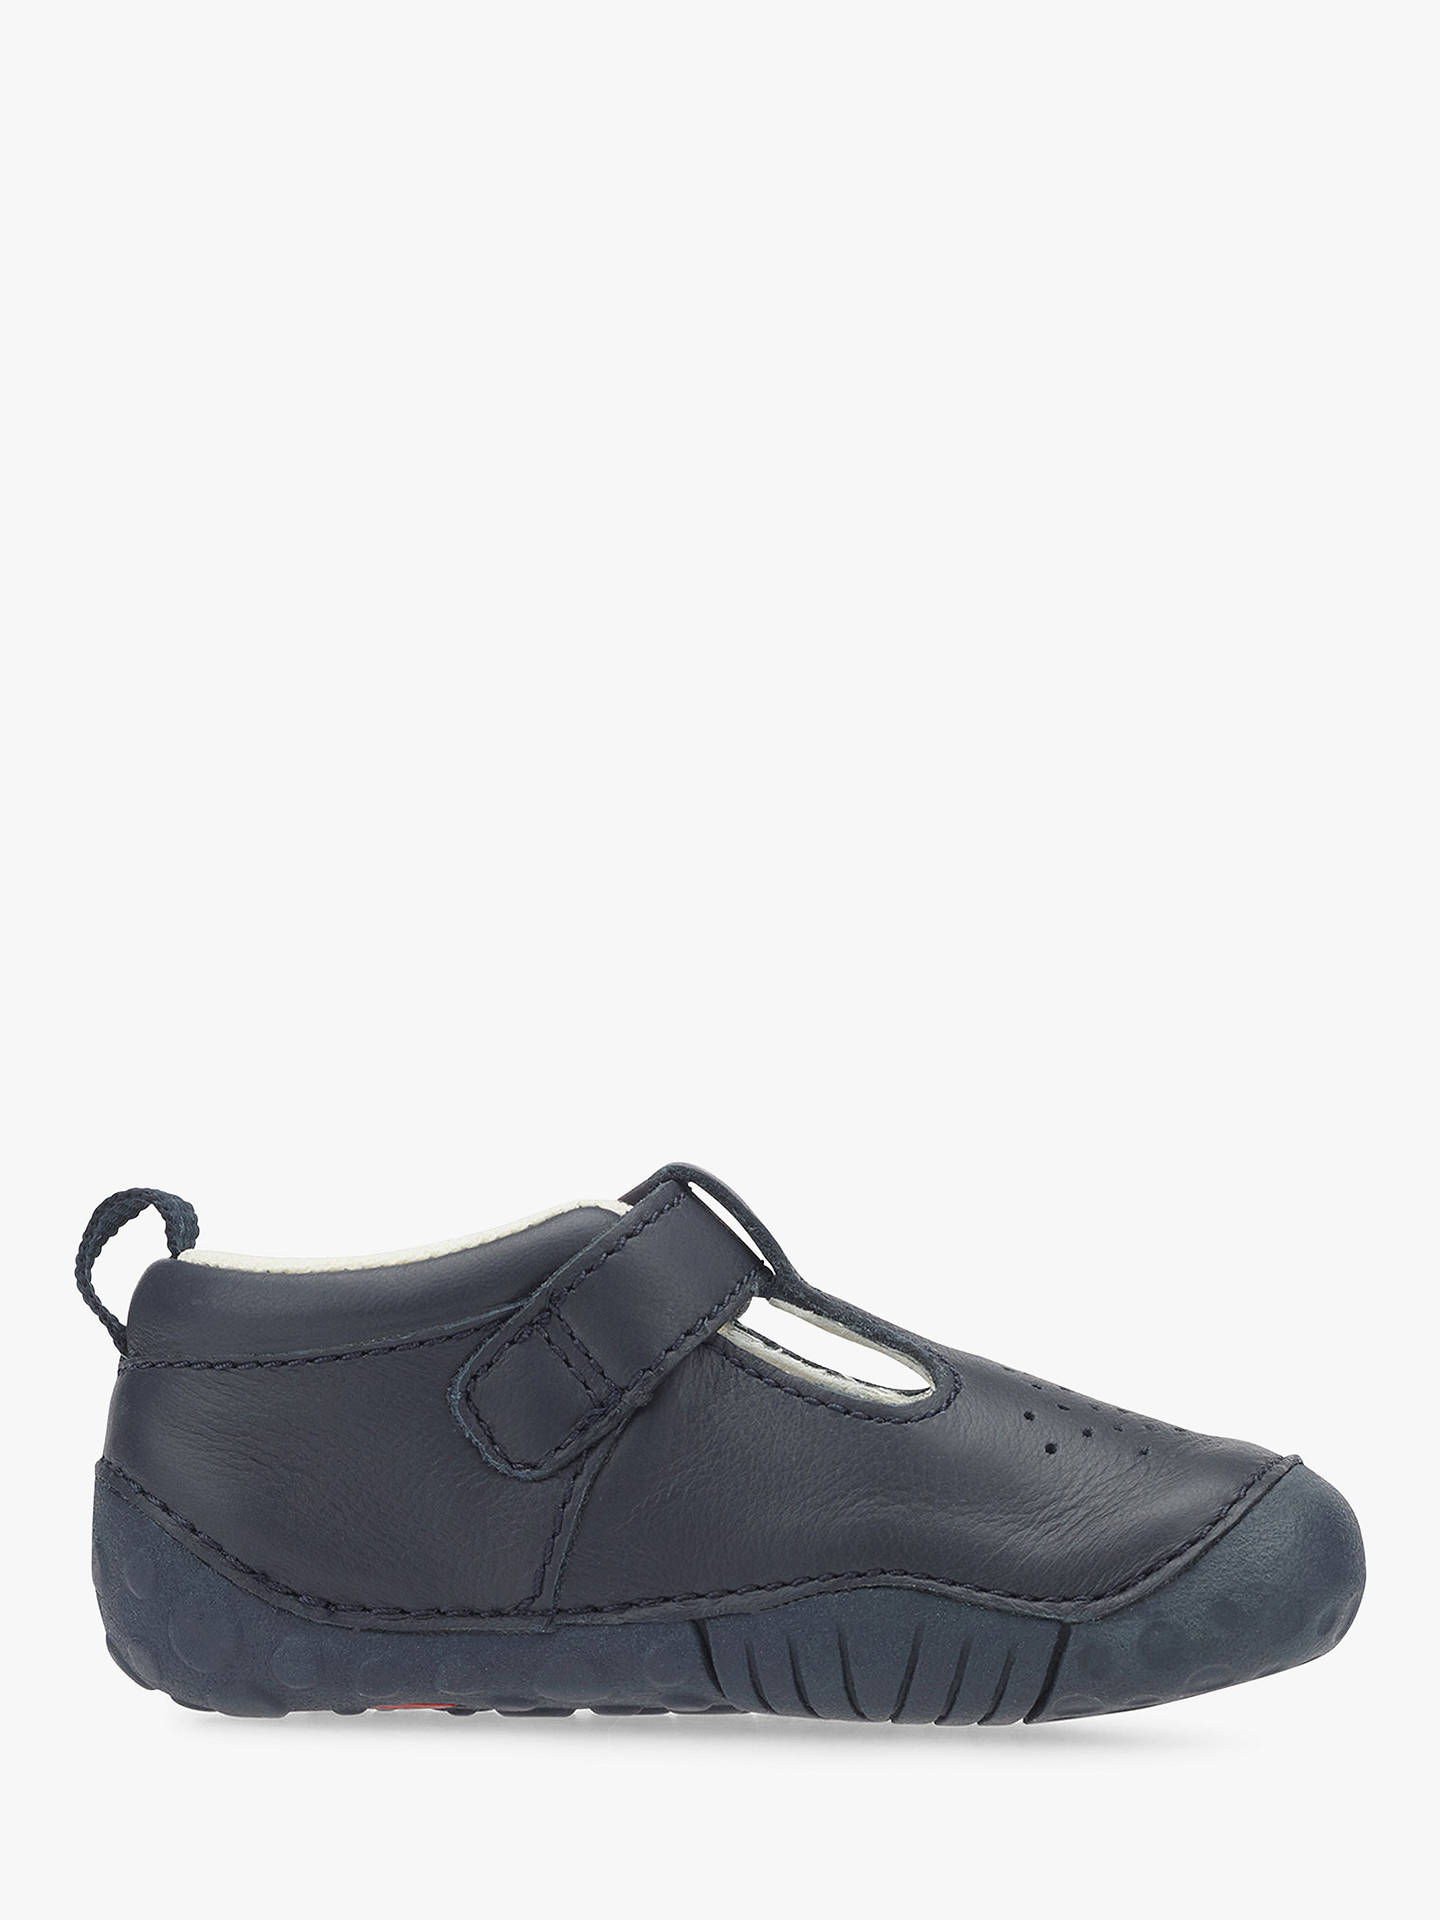 BuyStart-rite Baby Jack T-bar Leather Shoes, Navy, 2F Jnr Online at johnlewis.com